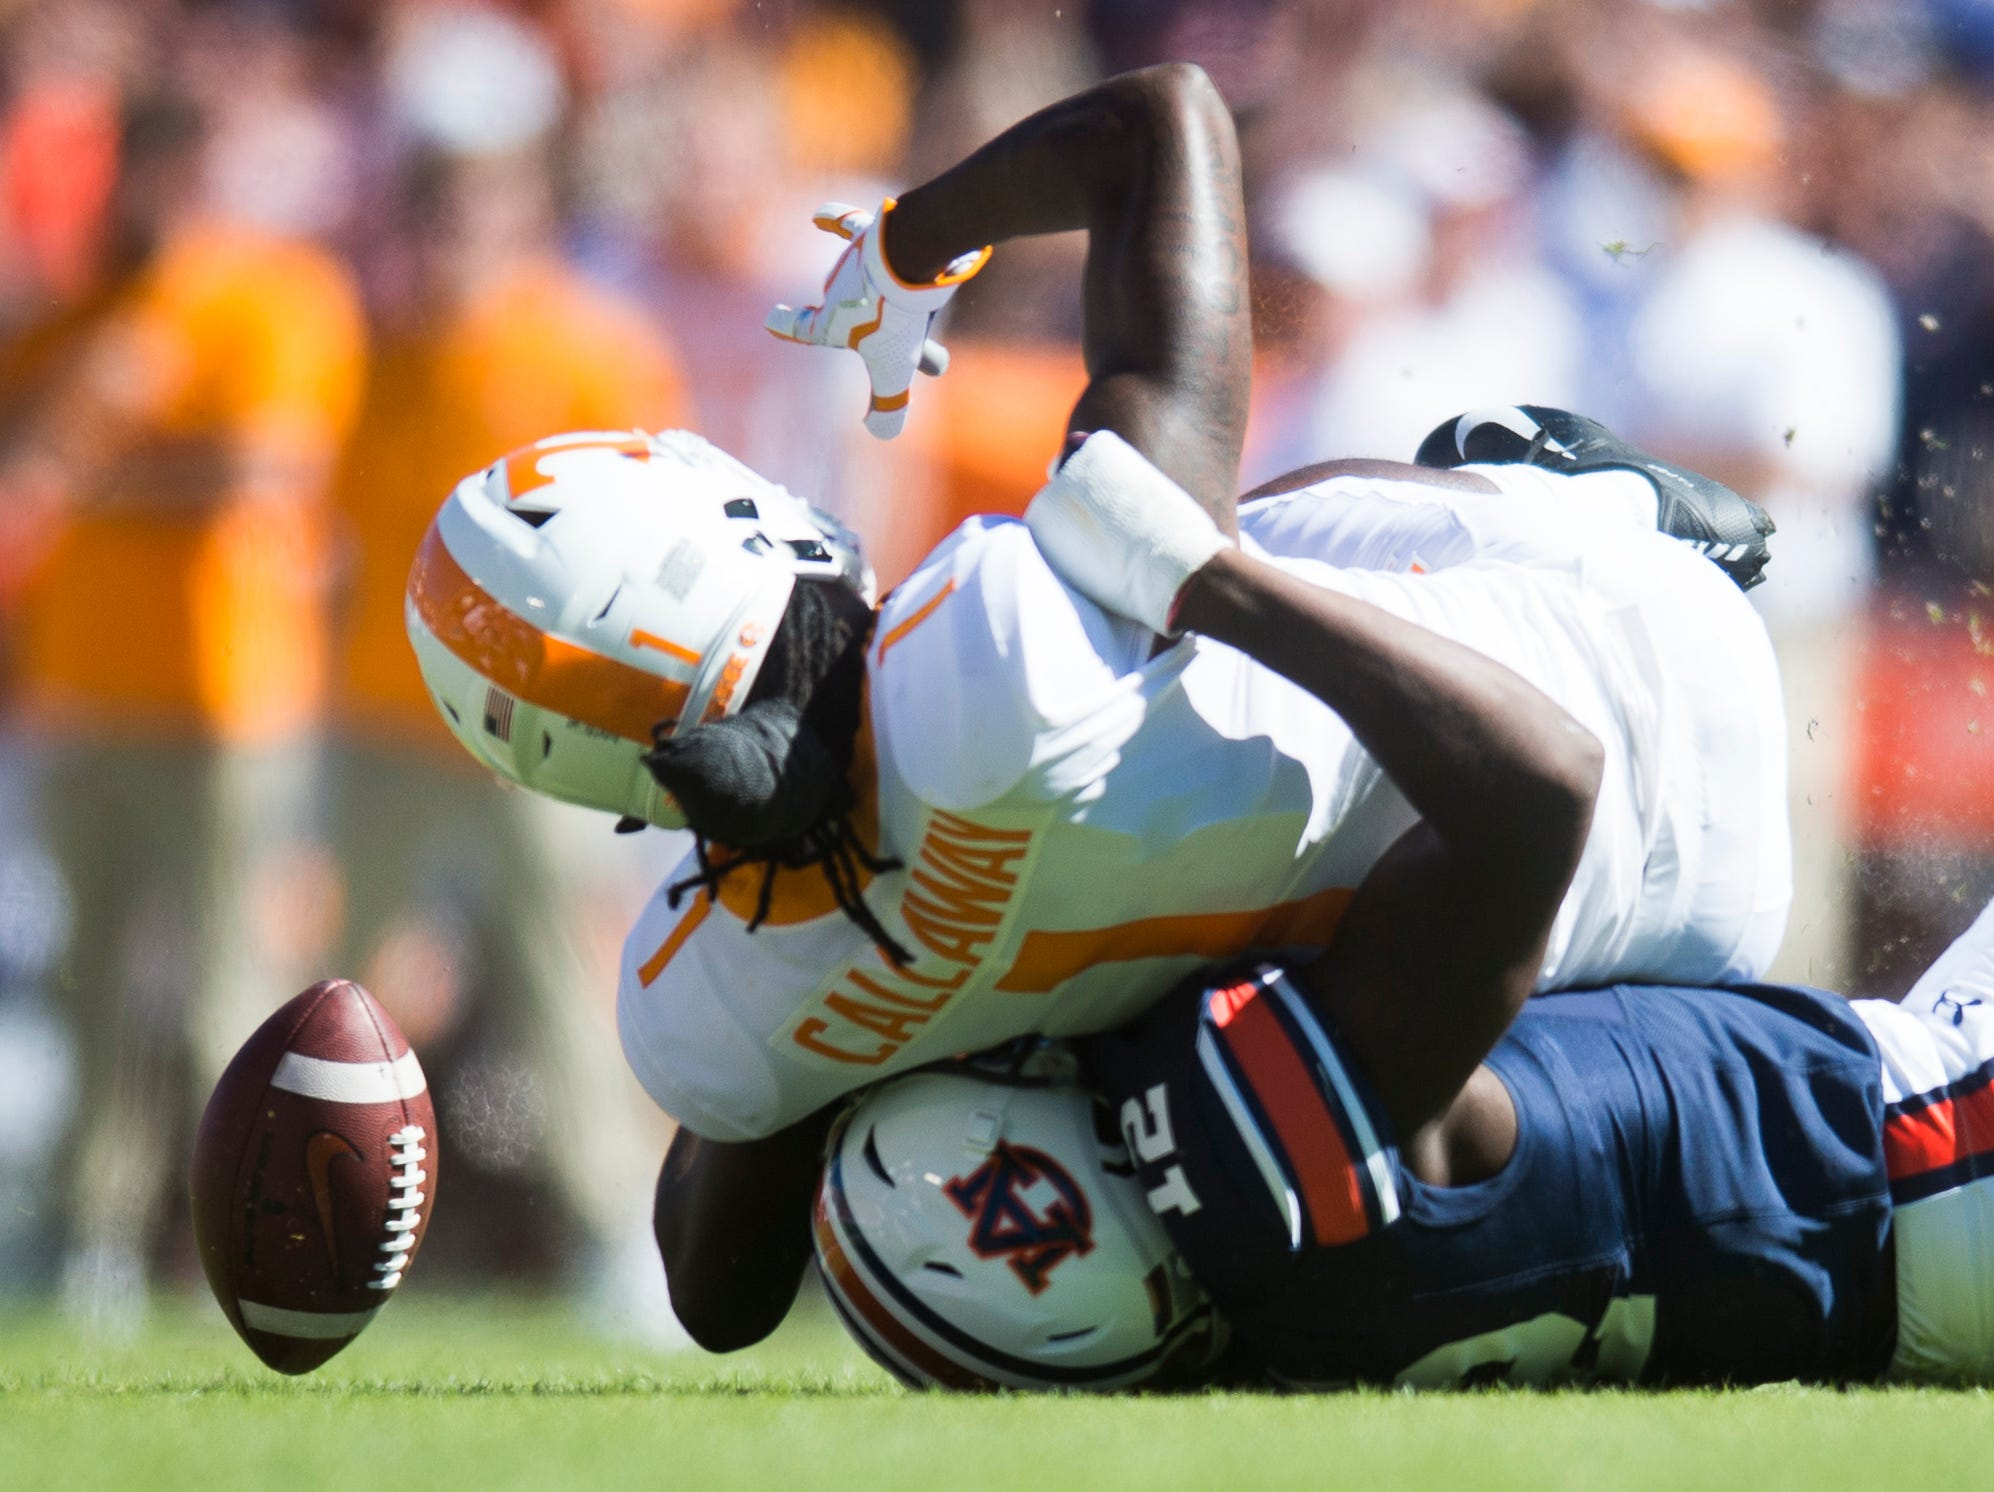 Tennessee wide receiver Marquez Callaway (1)  is taken down by Auburn defensive back Jamel Dean (12) during a game between Tennessee and Auburn at Jordan-Hare Stadium in Auburn, Alabama on Saturday, October 13, 2018.